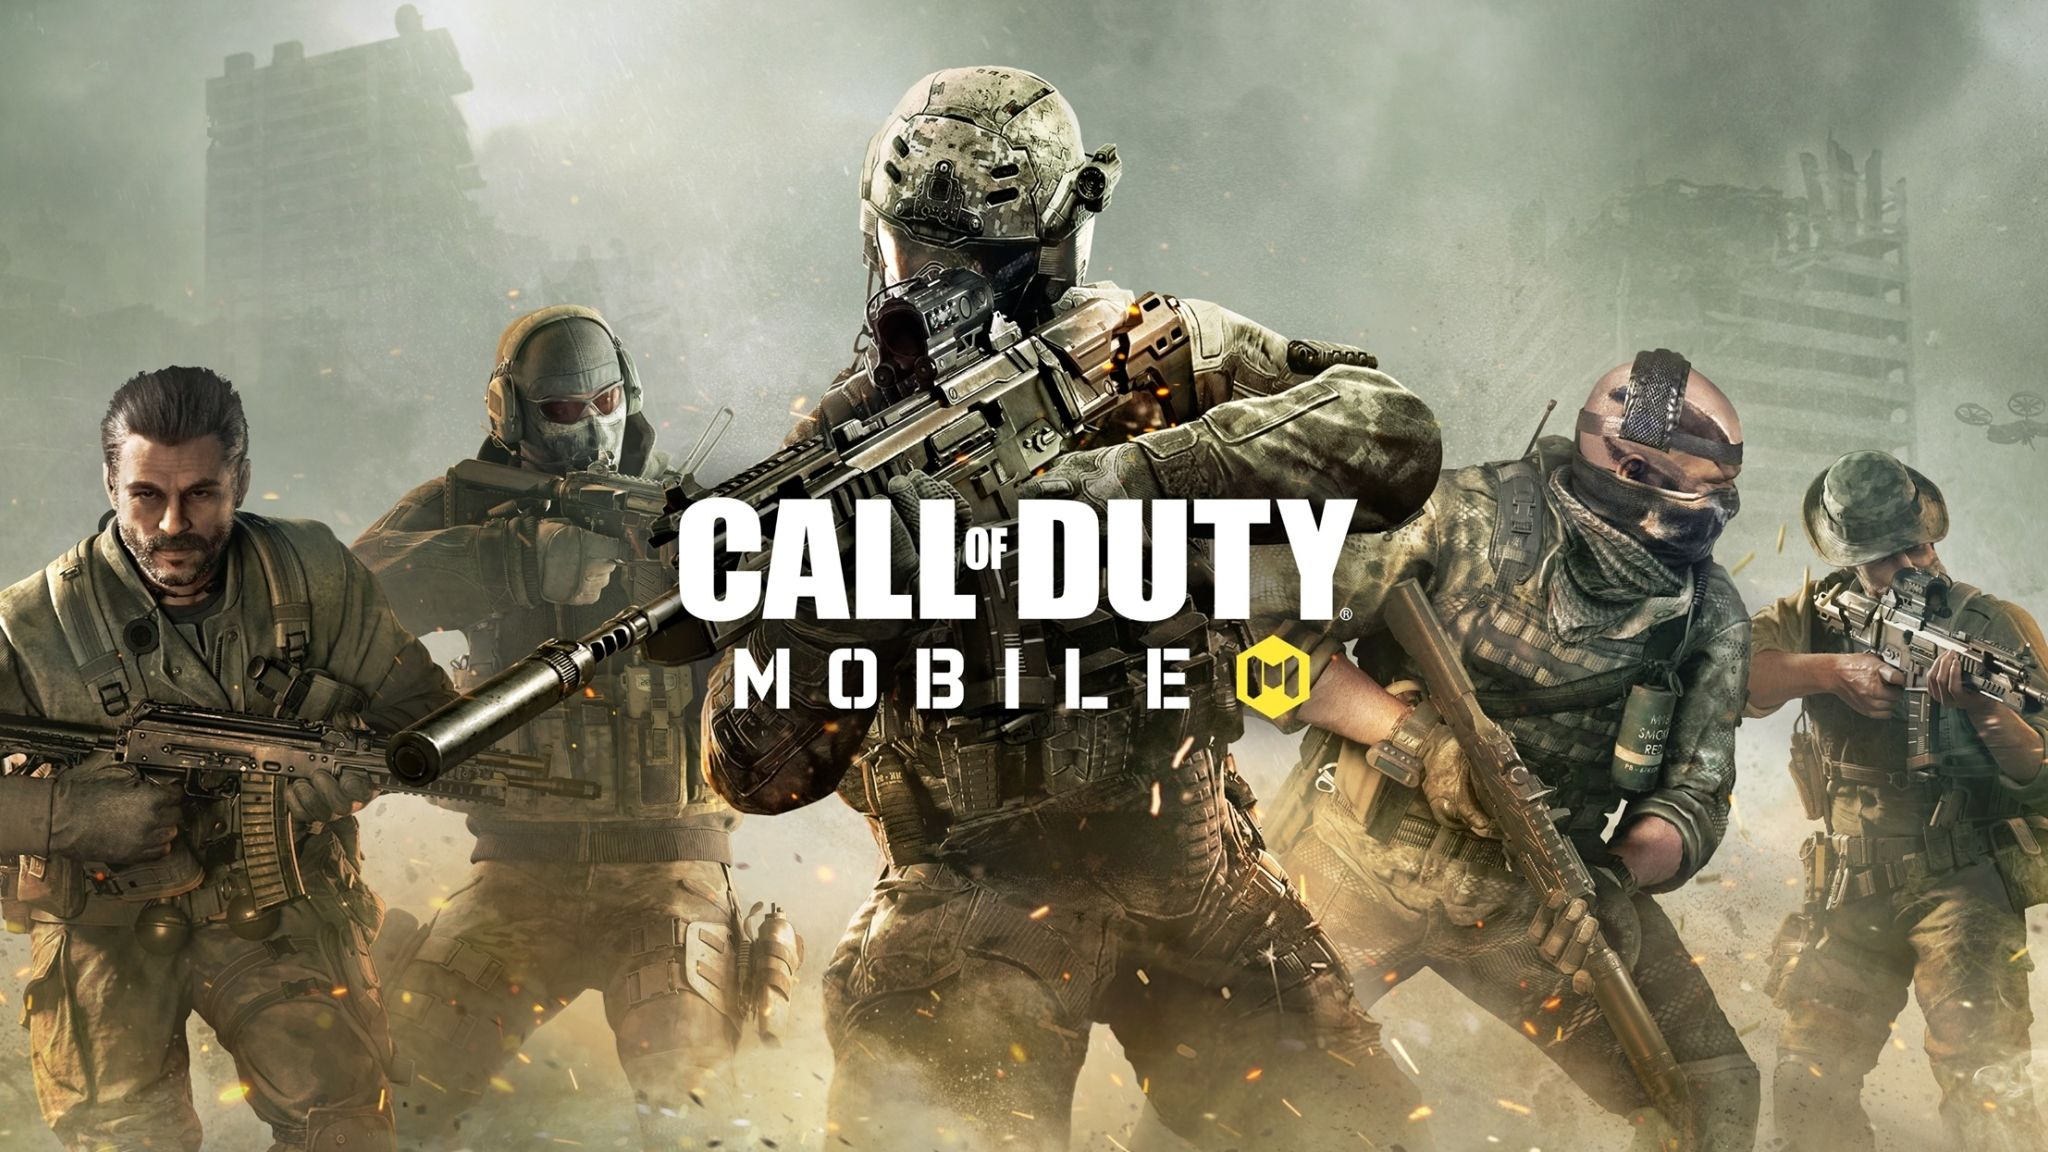 Call Of Duty 2048x1152 Wallpapers Top Free Call Of Duty